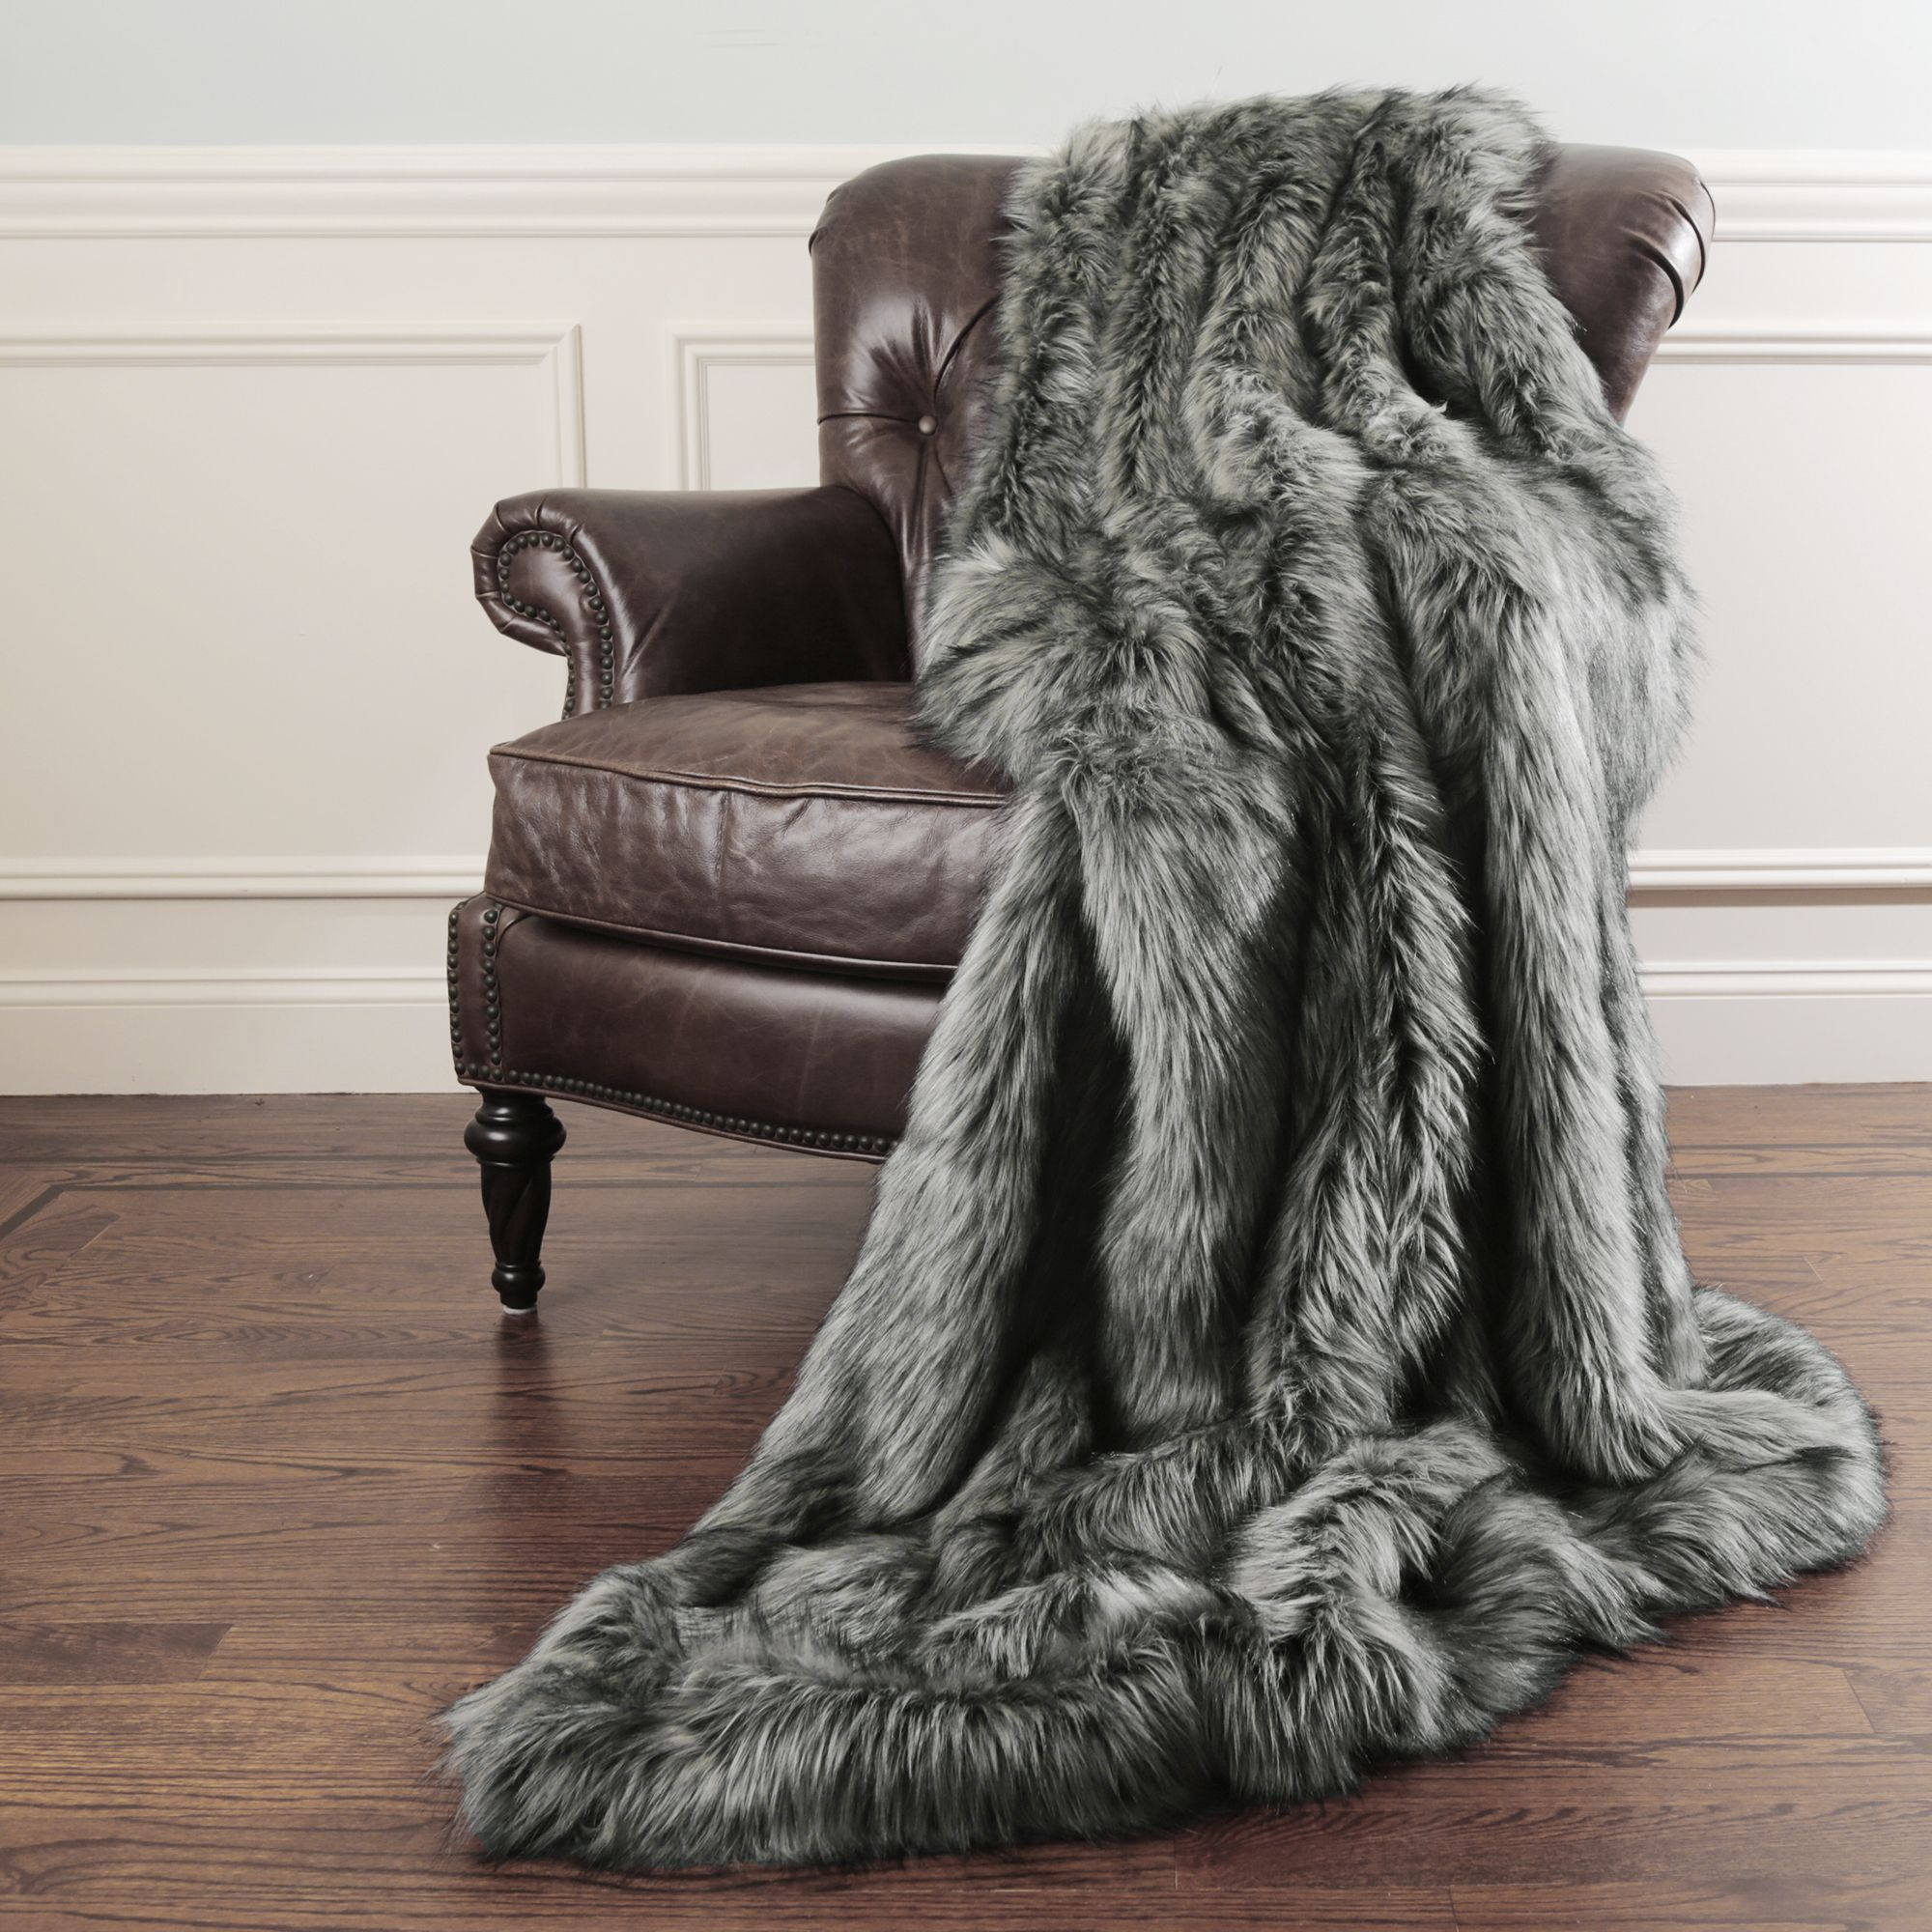 living room colour schemes brown sofa interior design ideas traditional each faux fur throw comes with a key chain. the ...